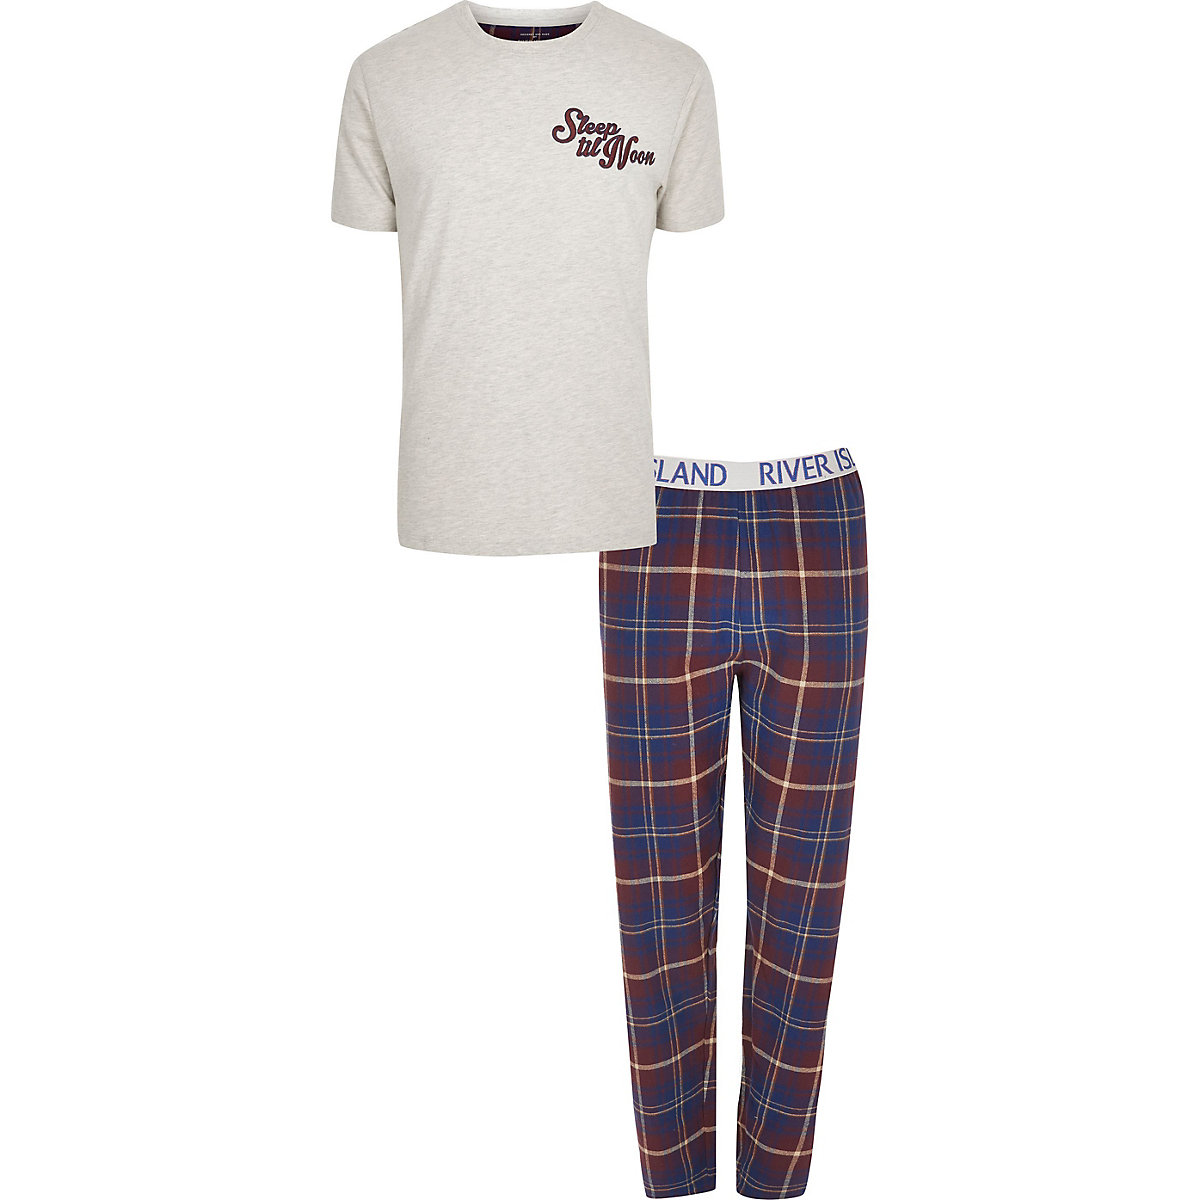 Big and Tall 'sleep till noon' pajama set